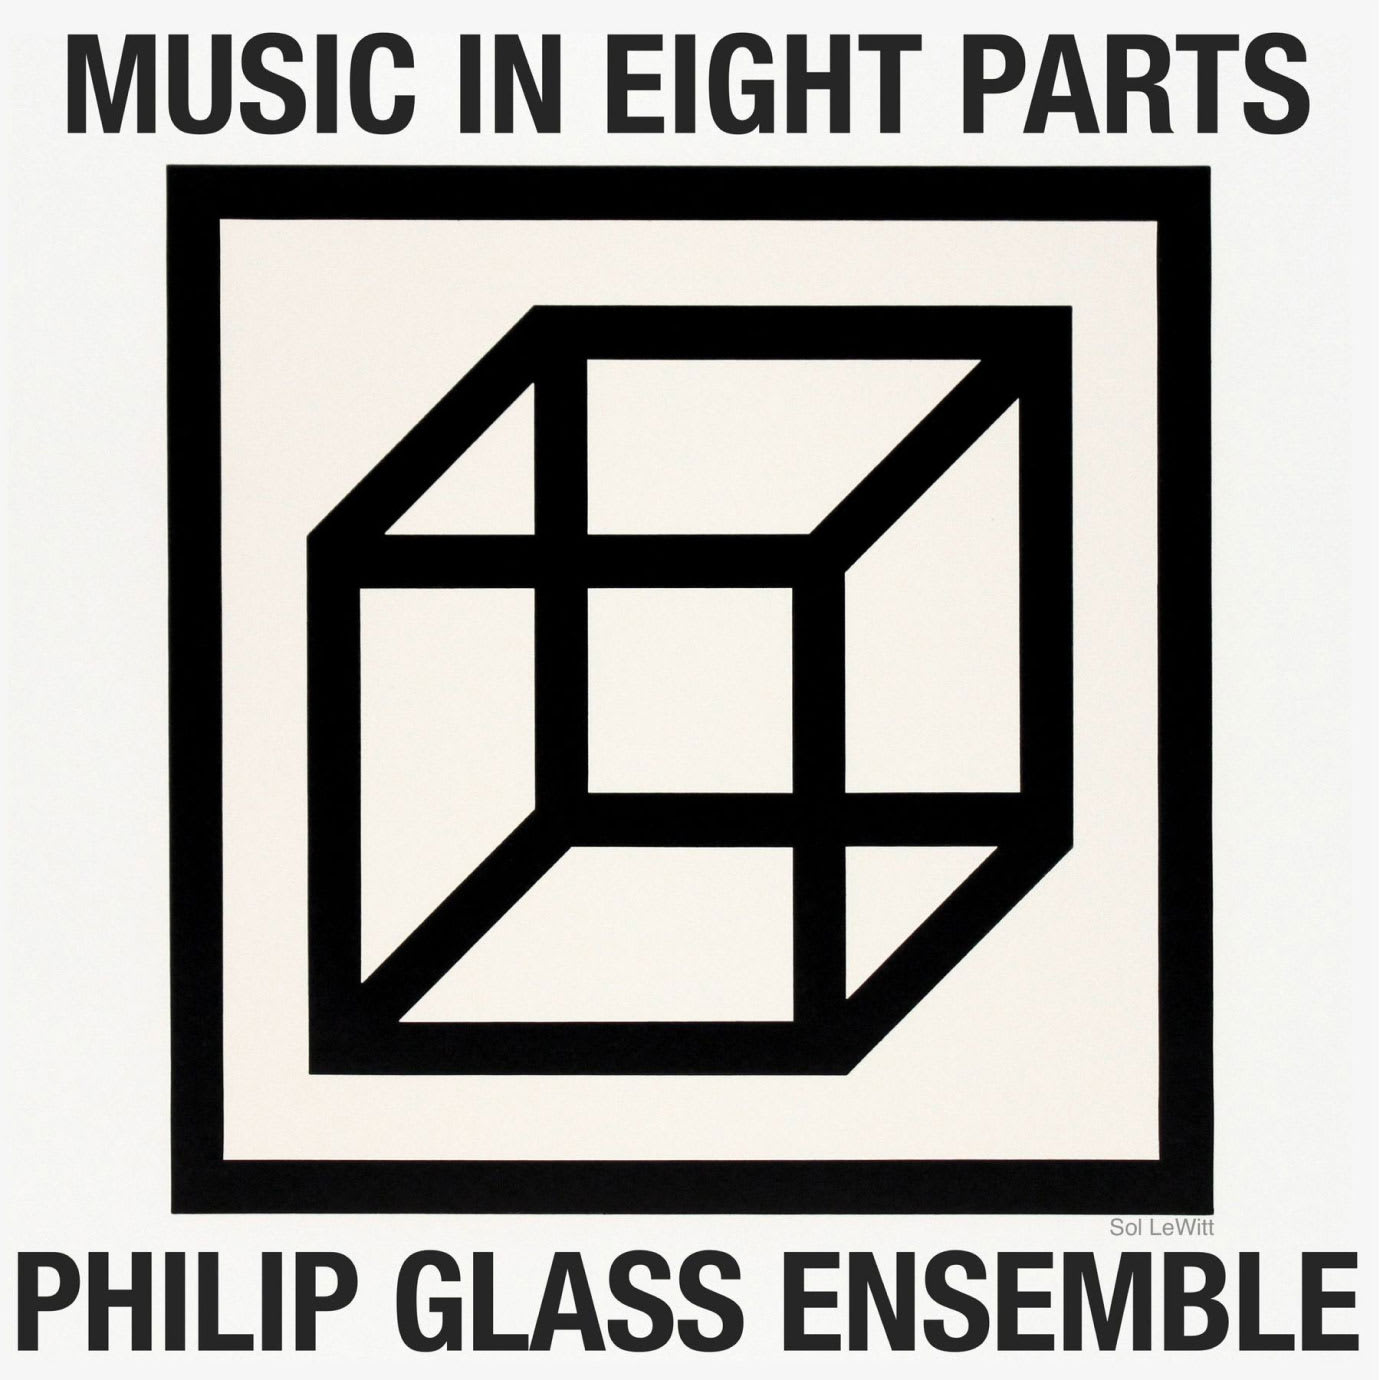 A cubist album cover with Philip Glass written on it.